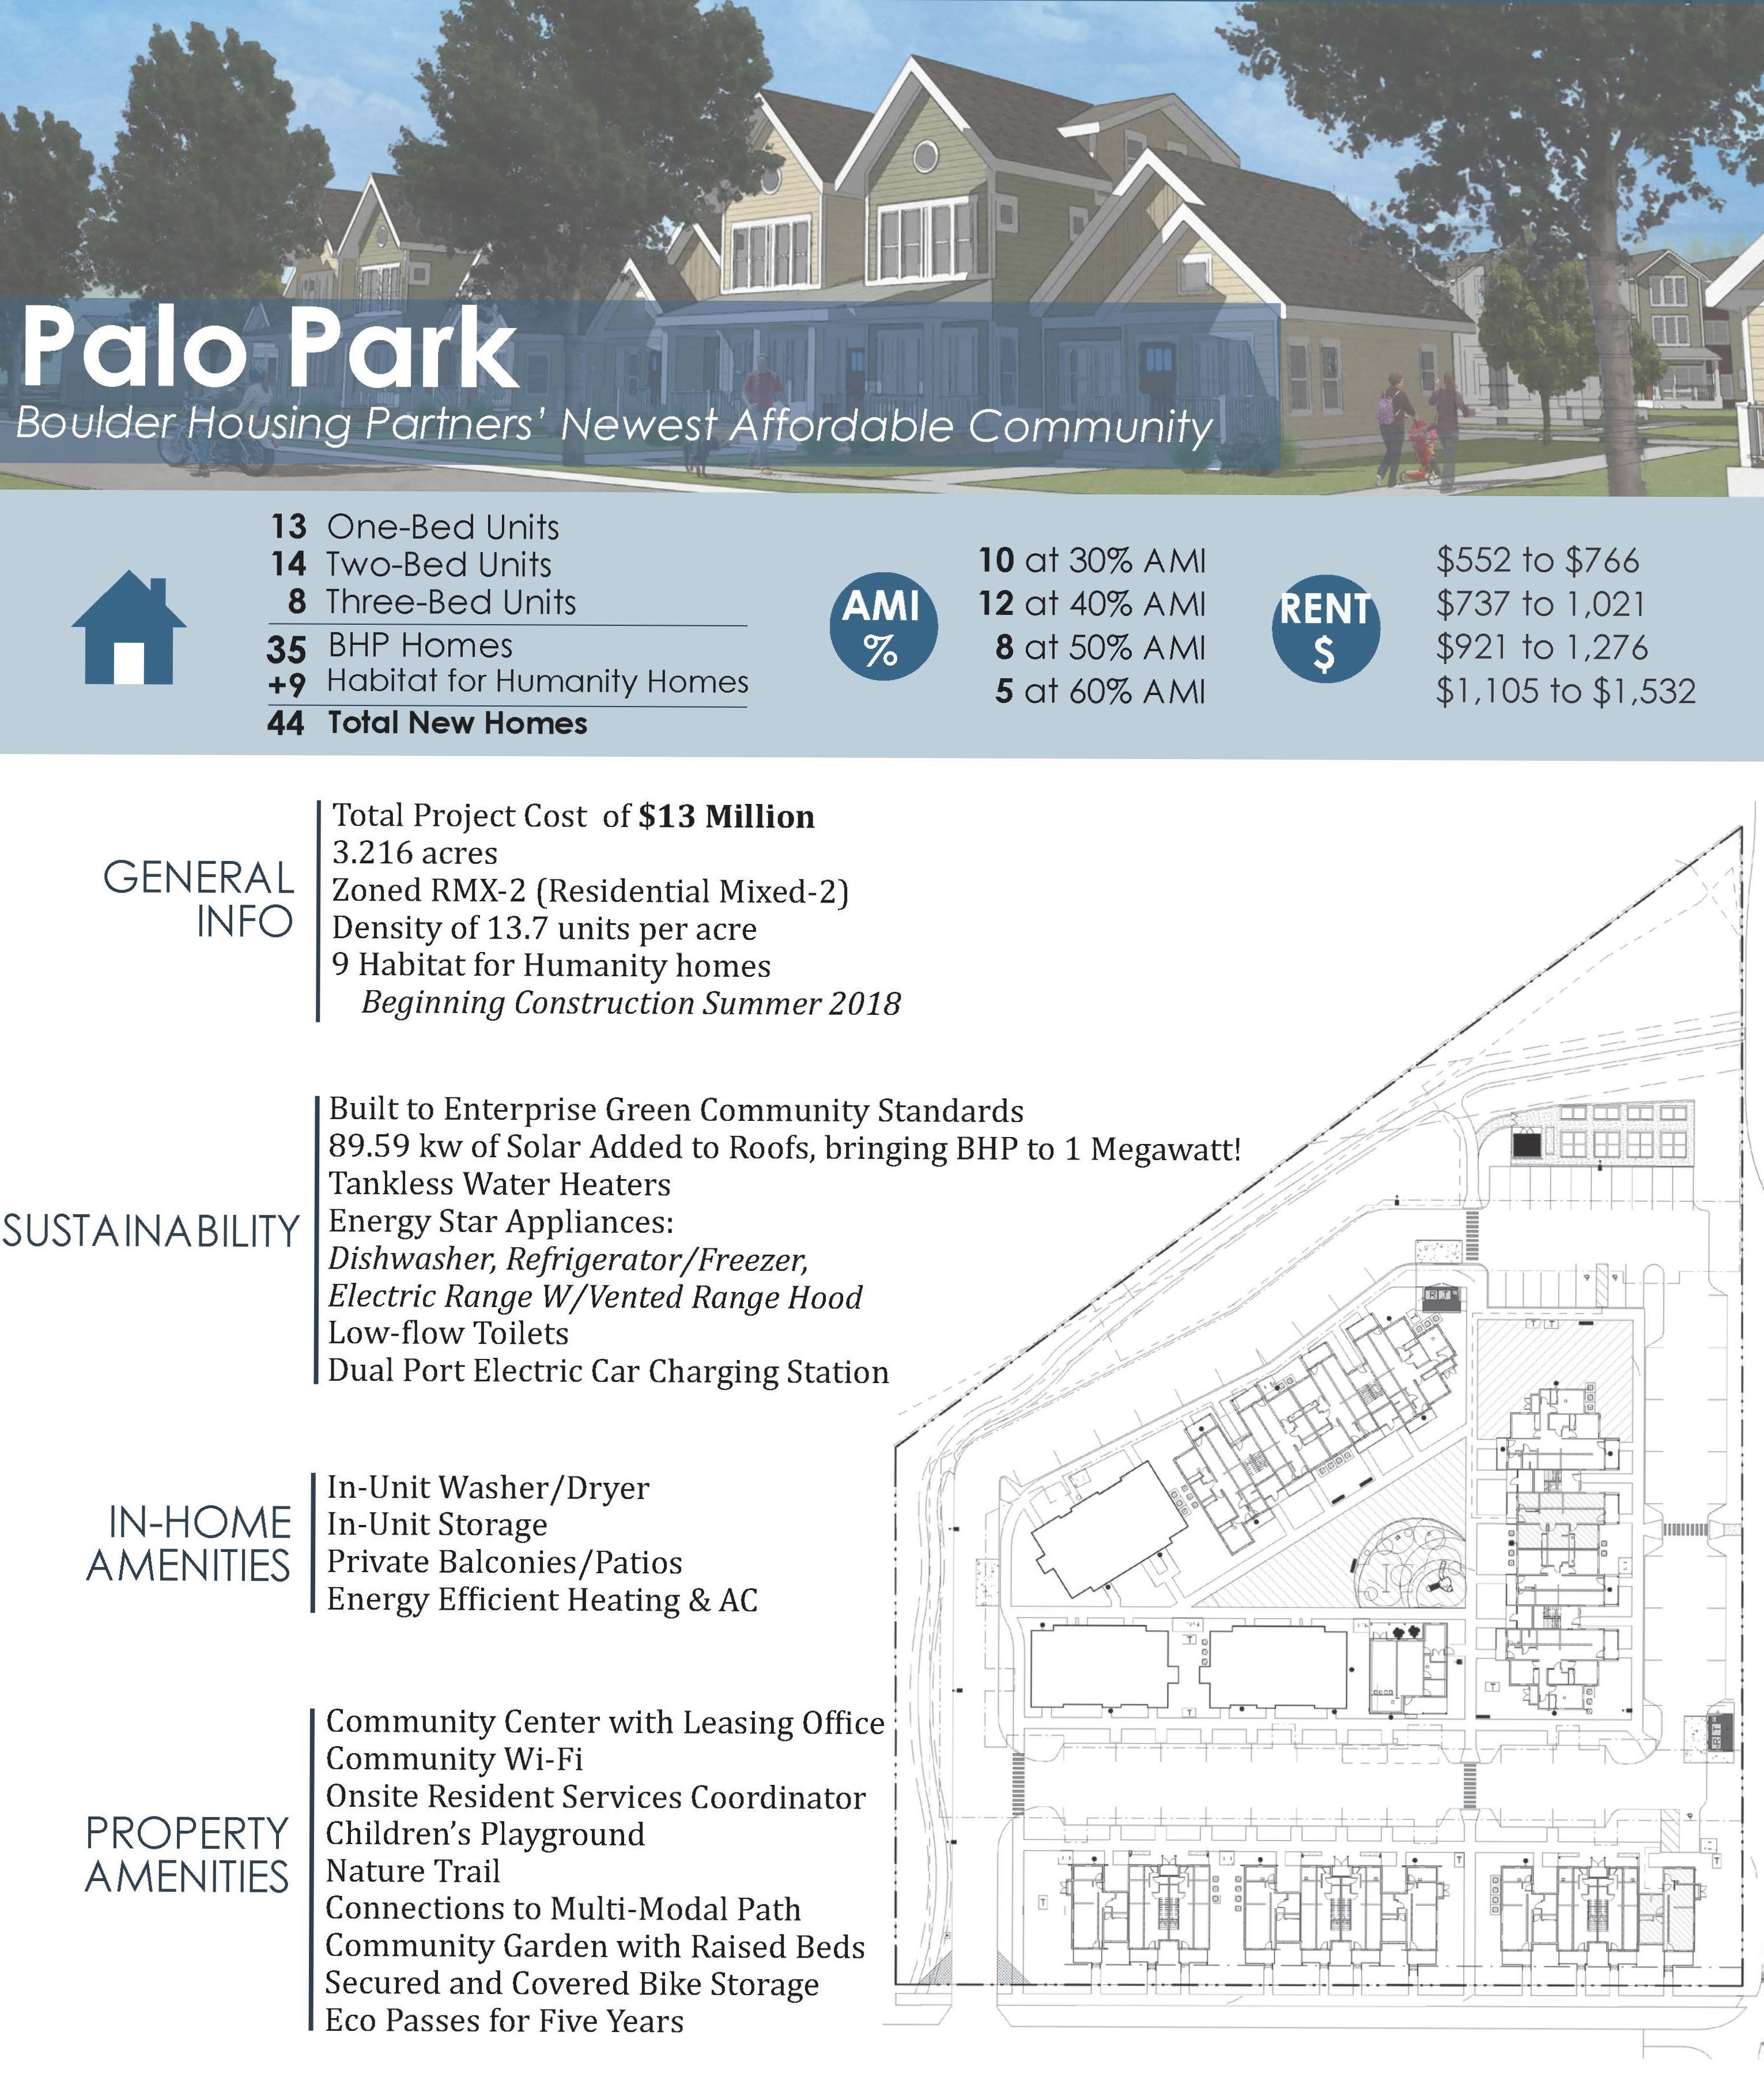 Palo Park Fact Sheet